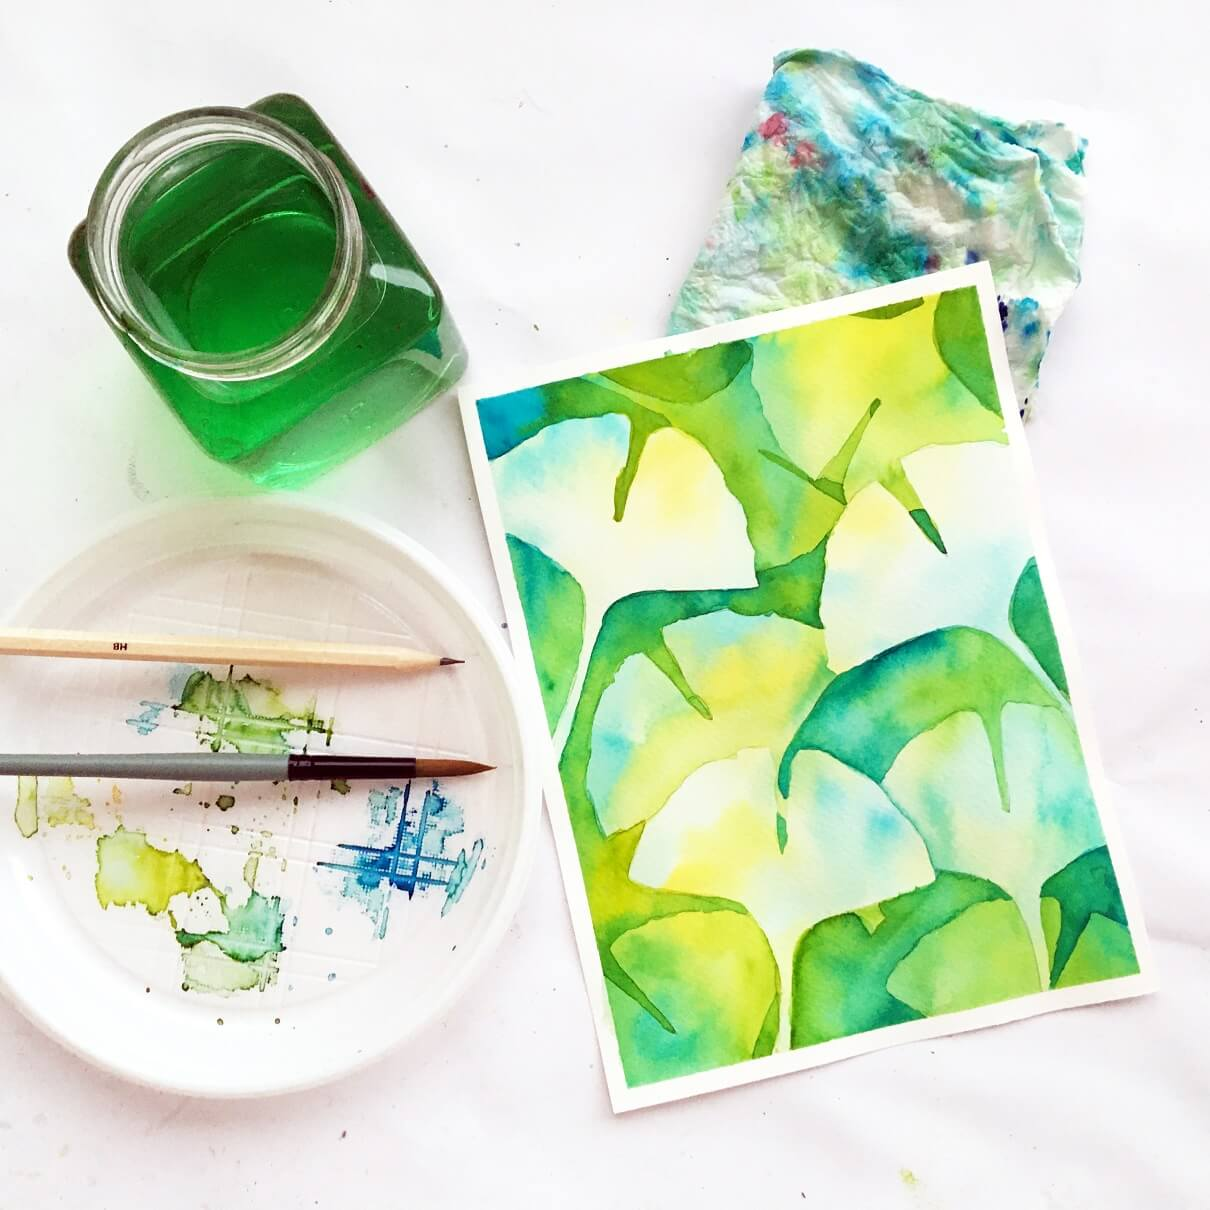 Negative painting in watercolor | Ginkgo biloba leaves | skillshare class for beginners